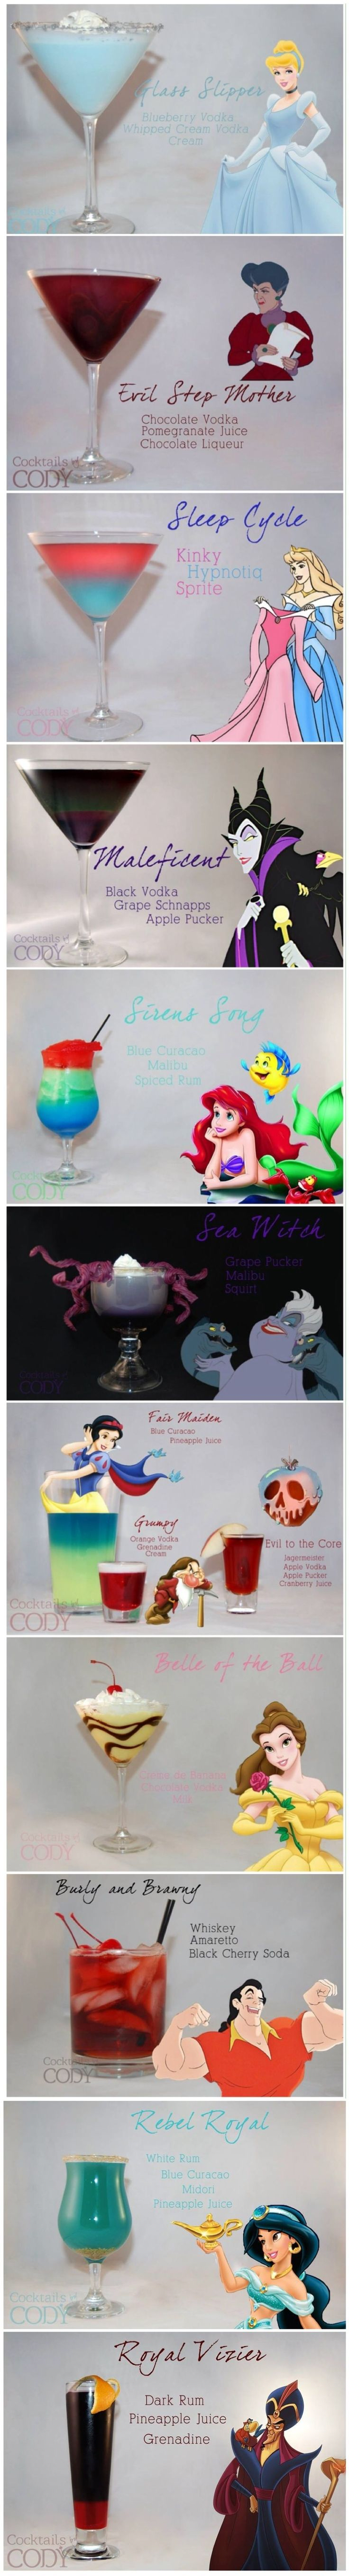 8 Disney-Themed Cocktails | Bev and Cuisine